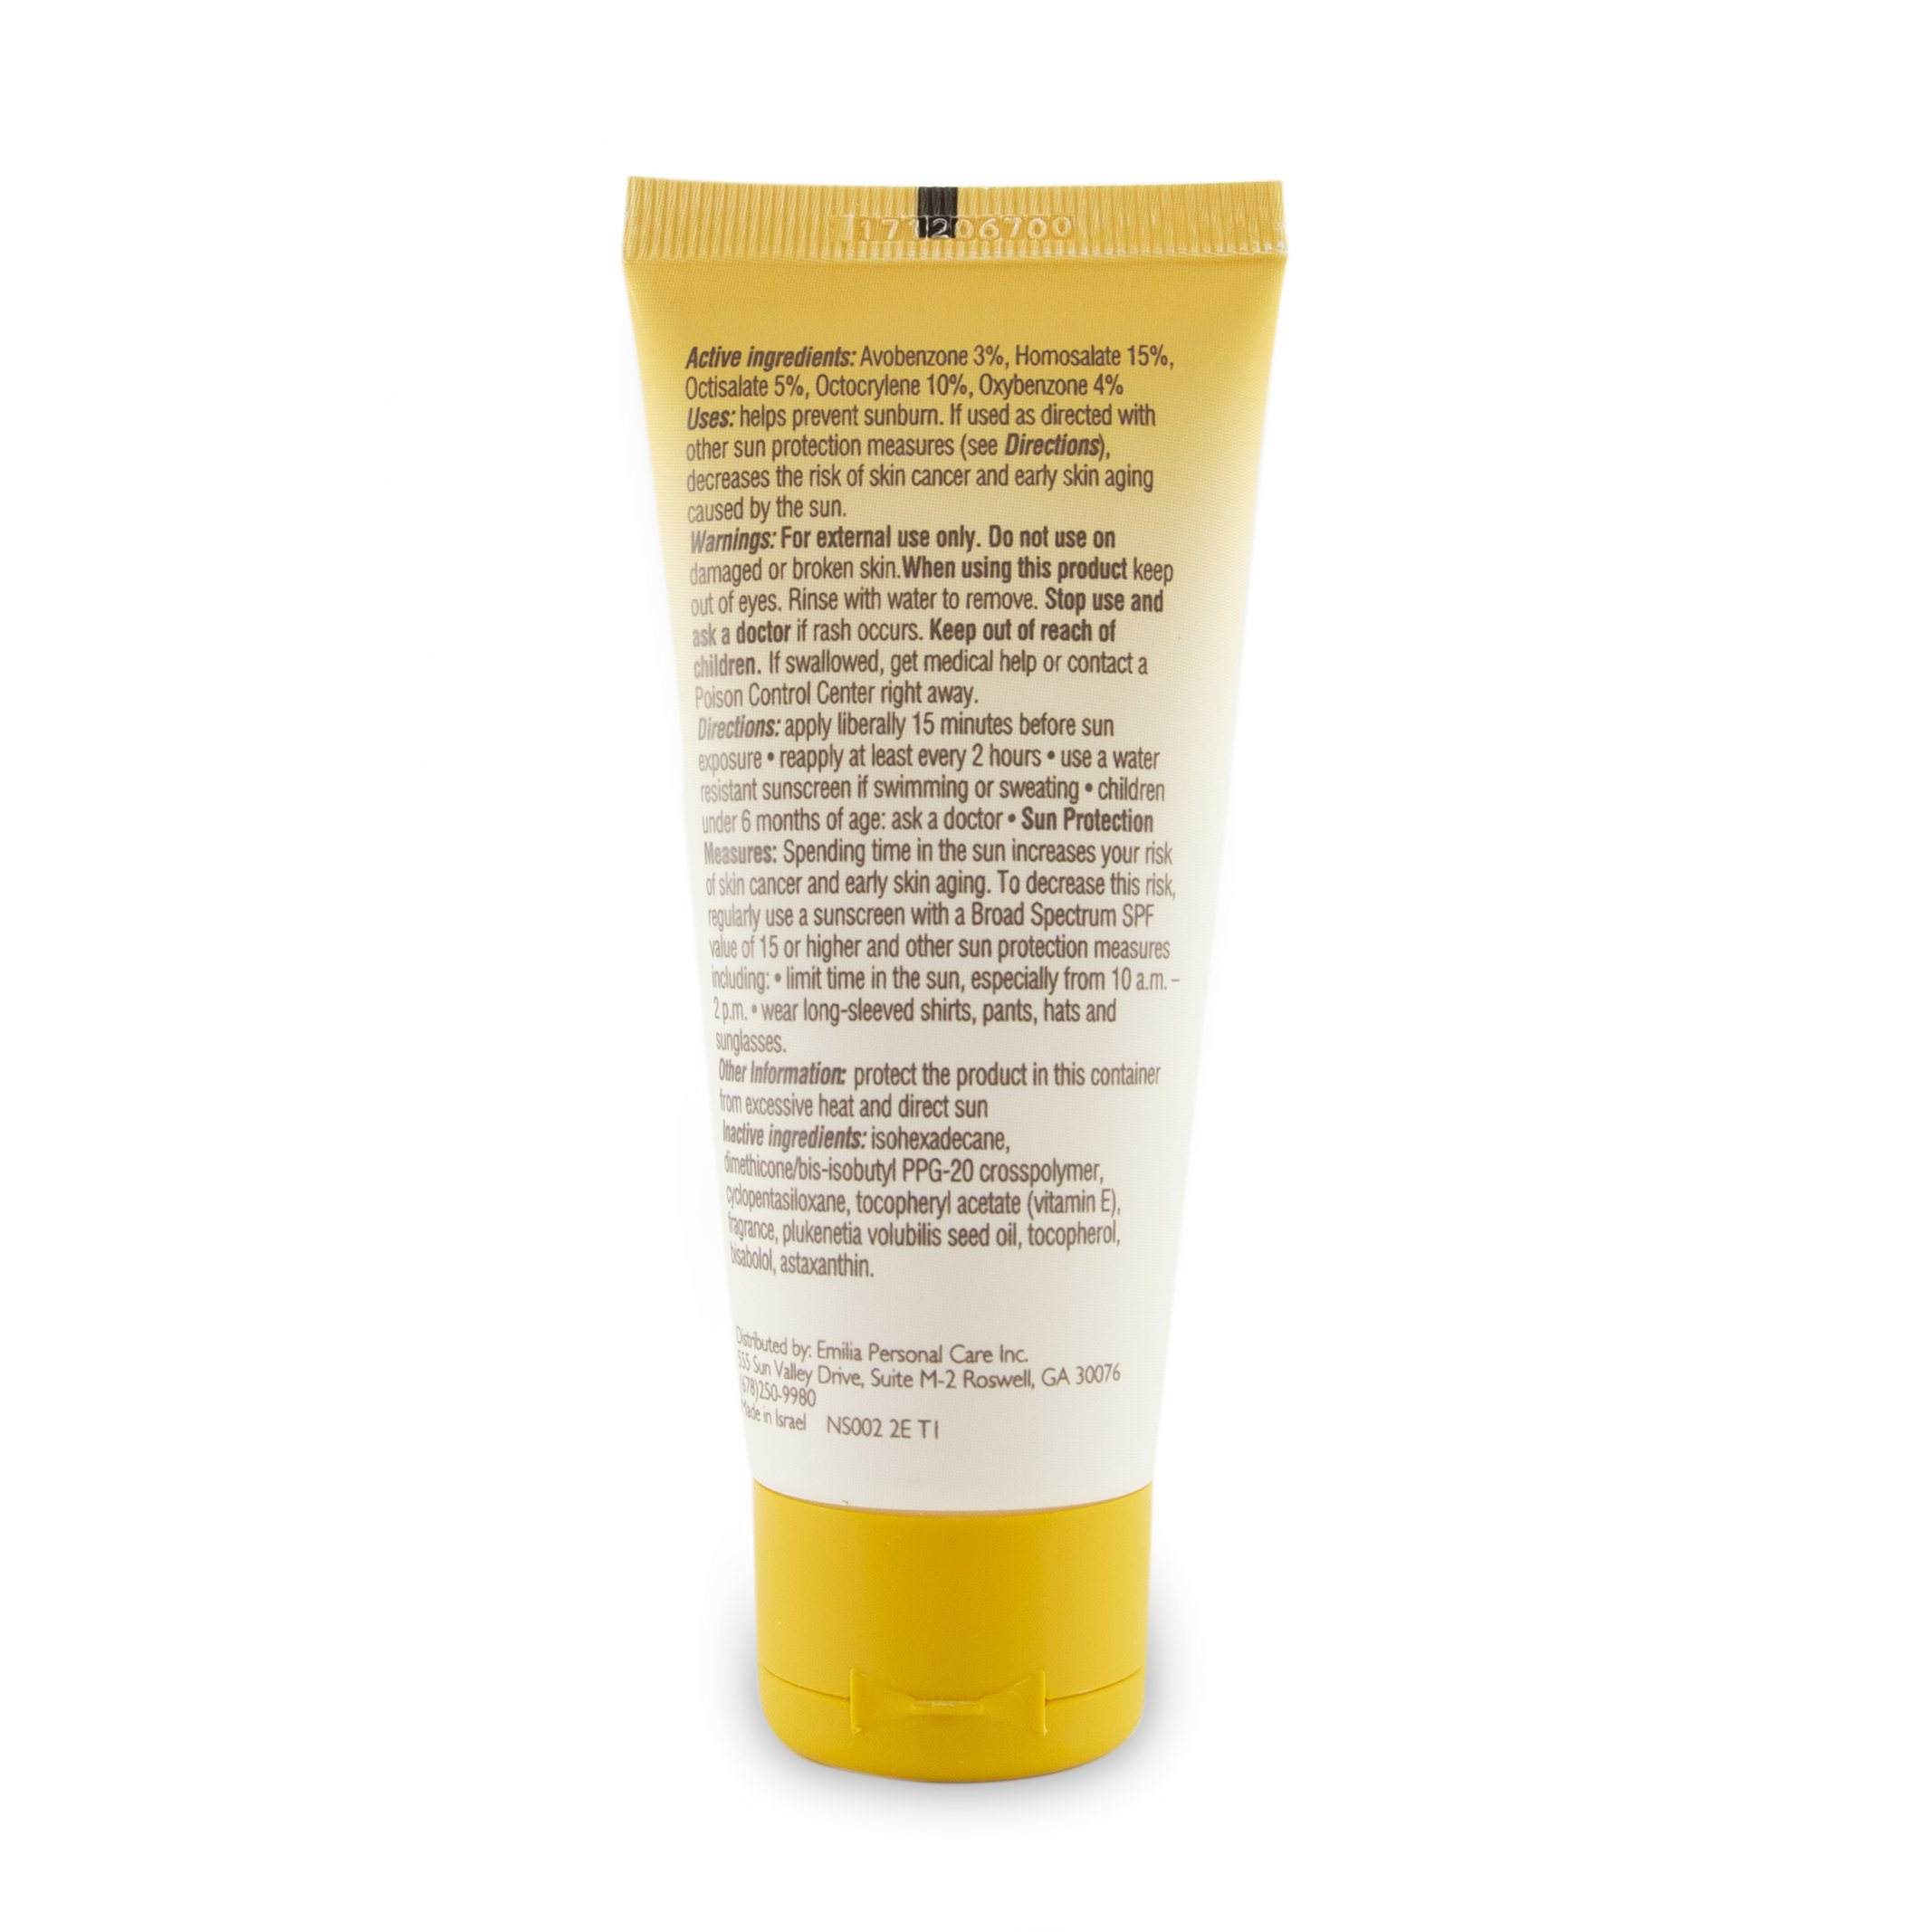 Face Sunscreen Gel SPF 50 - Facial Sun Protection and Moisturizer For All Skin Types, Naked Sun by Emilia, Travel Size 1.69 FL. OZ. by Emilia (Image #3)